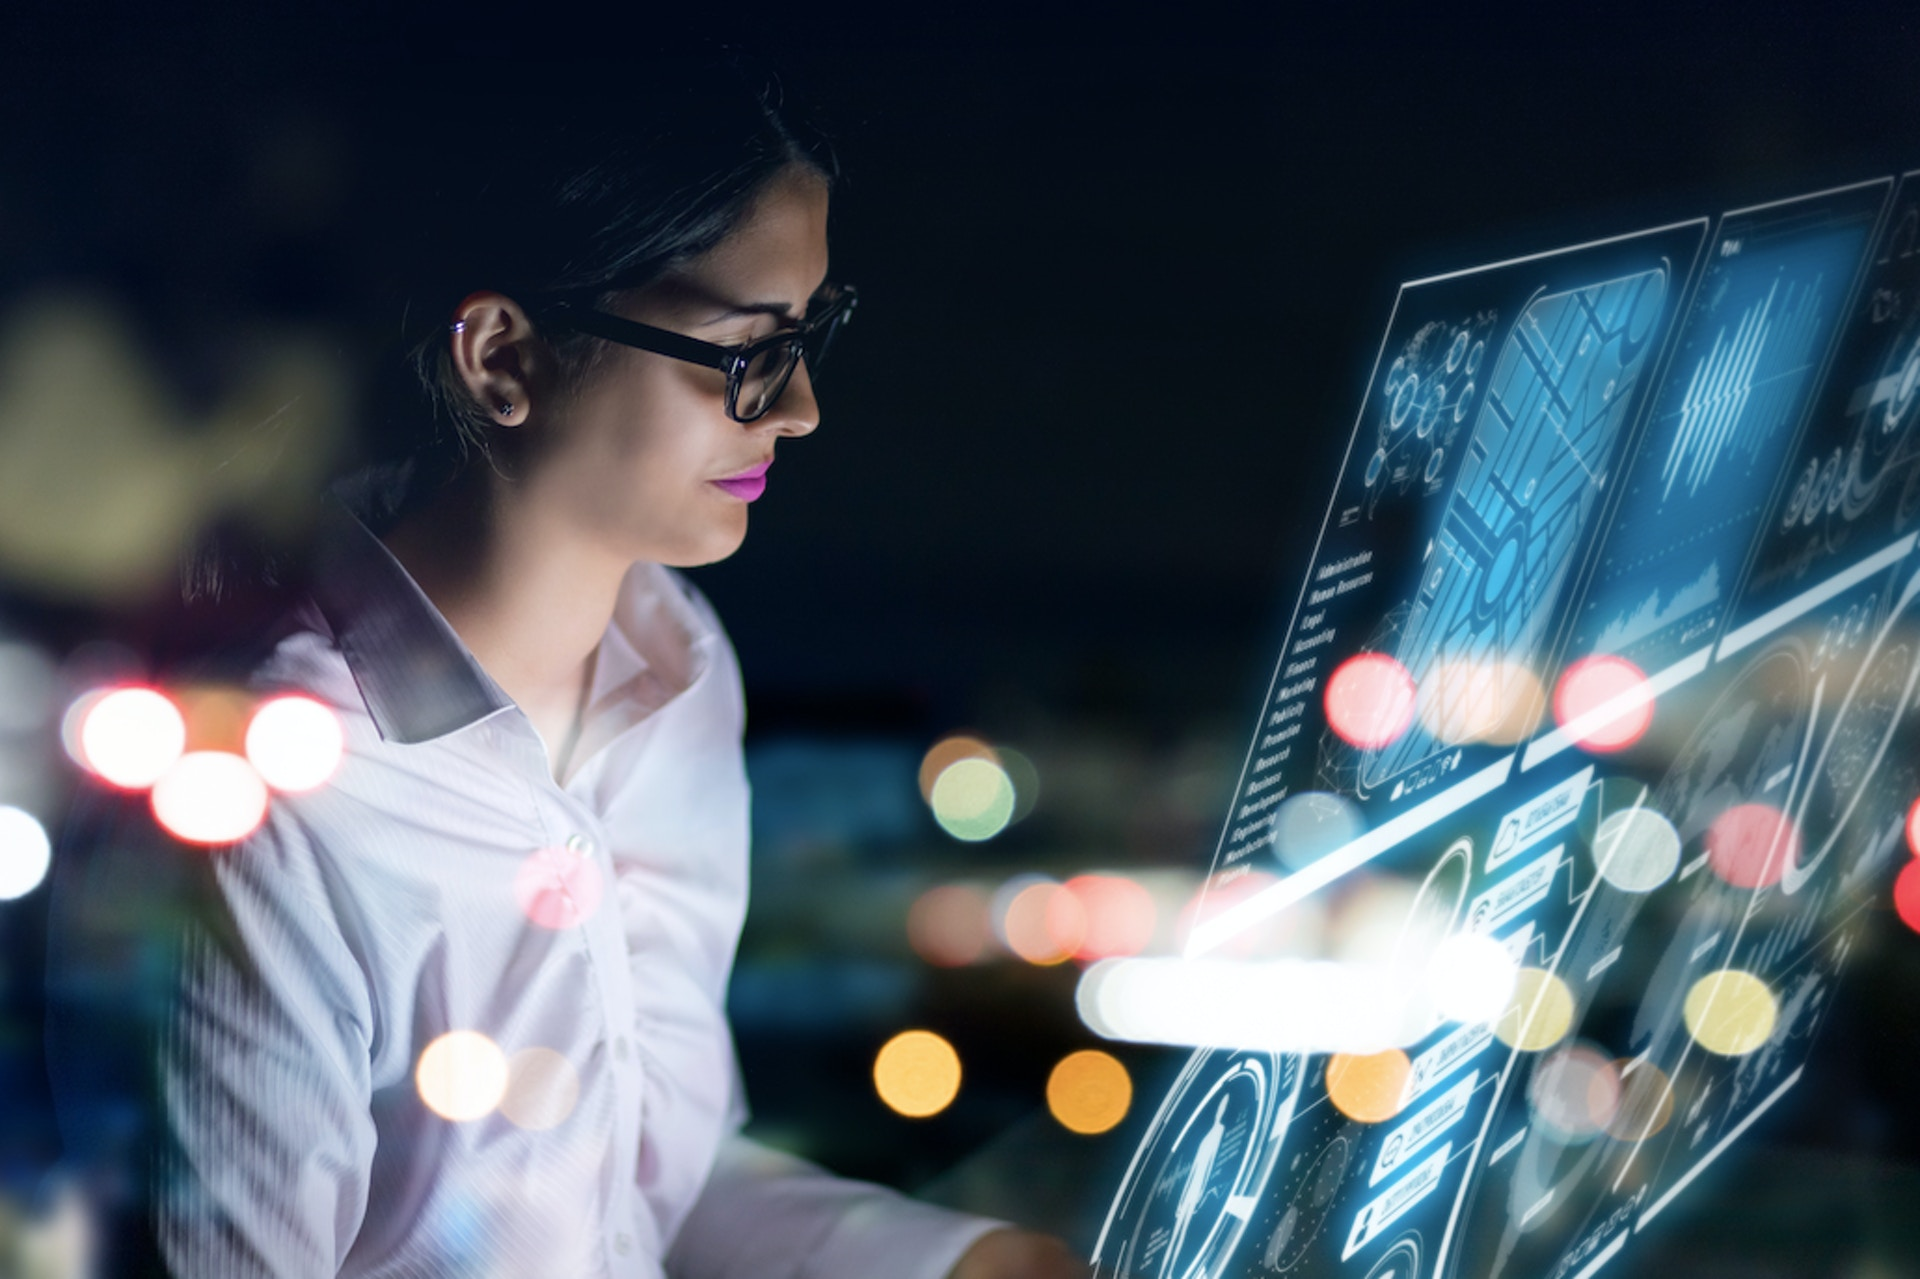 woman wearing glasses and working on a computer screen